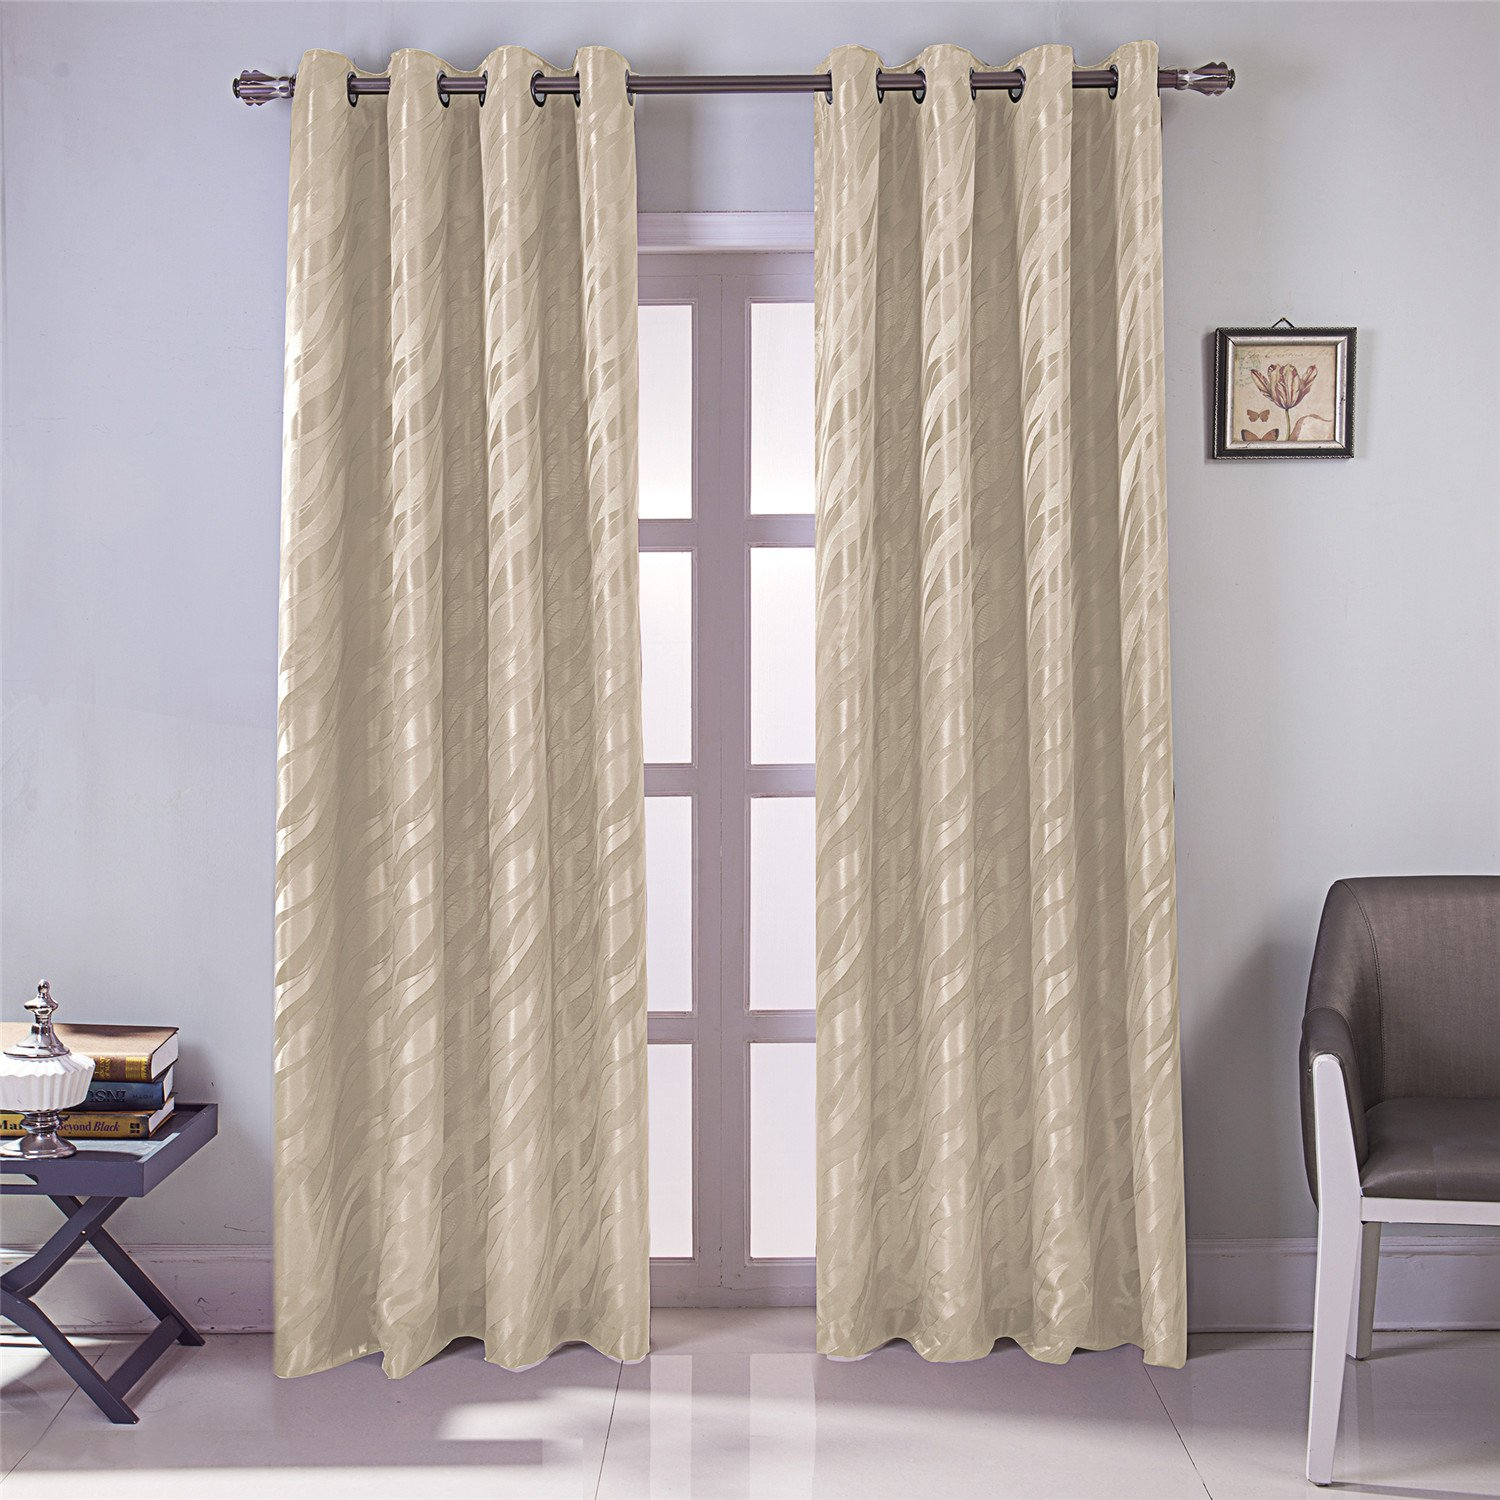 Jacquard Marble Geometry Pattern Curtain Faux Silk Double Layers Fully Lined Grommet Top Blackout Curtain Thermal Insulated Washable Drape Noise Reducing No Formaldehyde GYROHOME